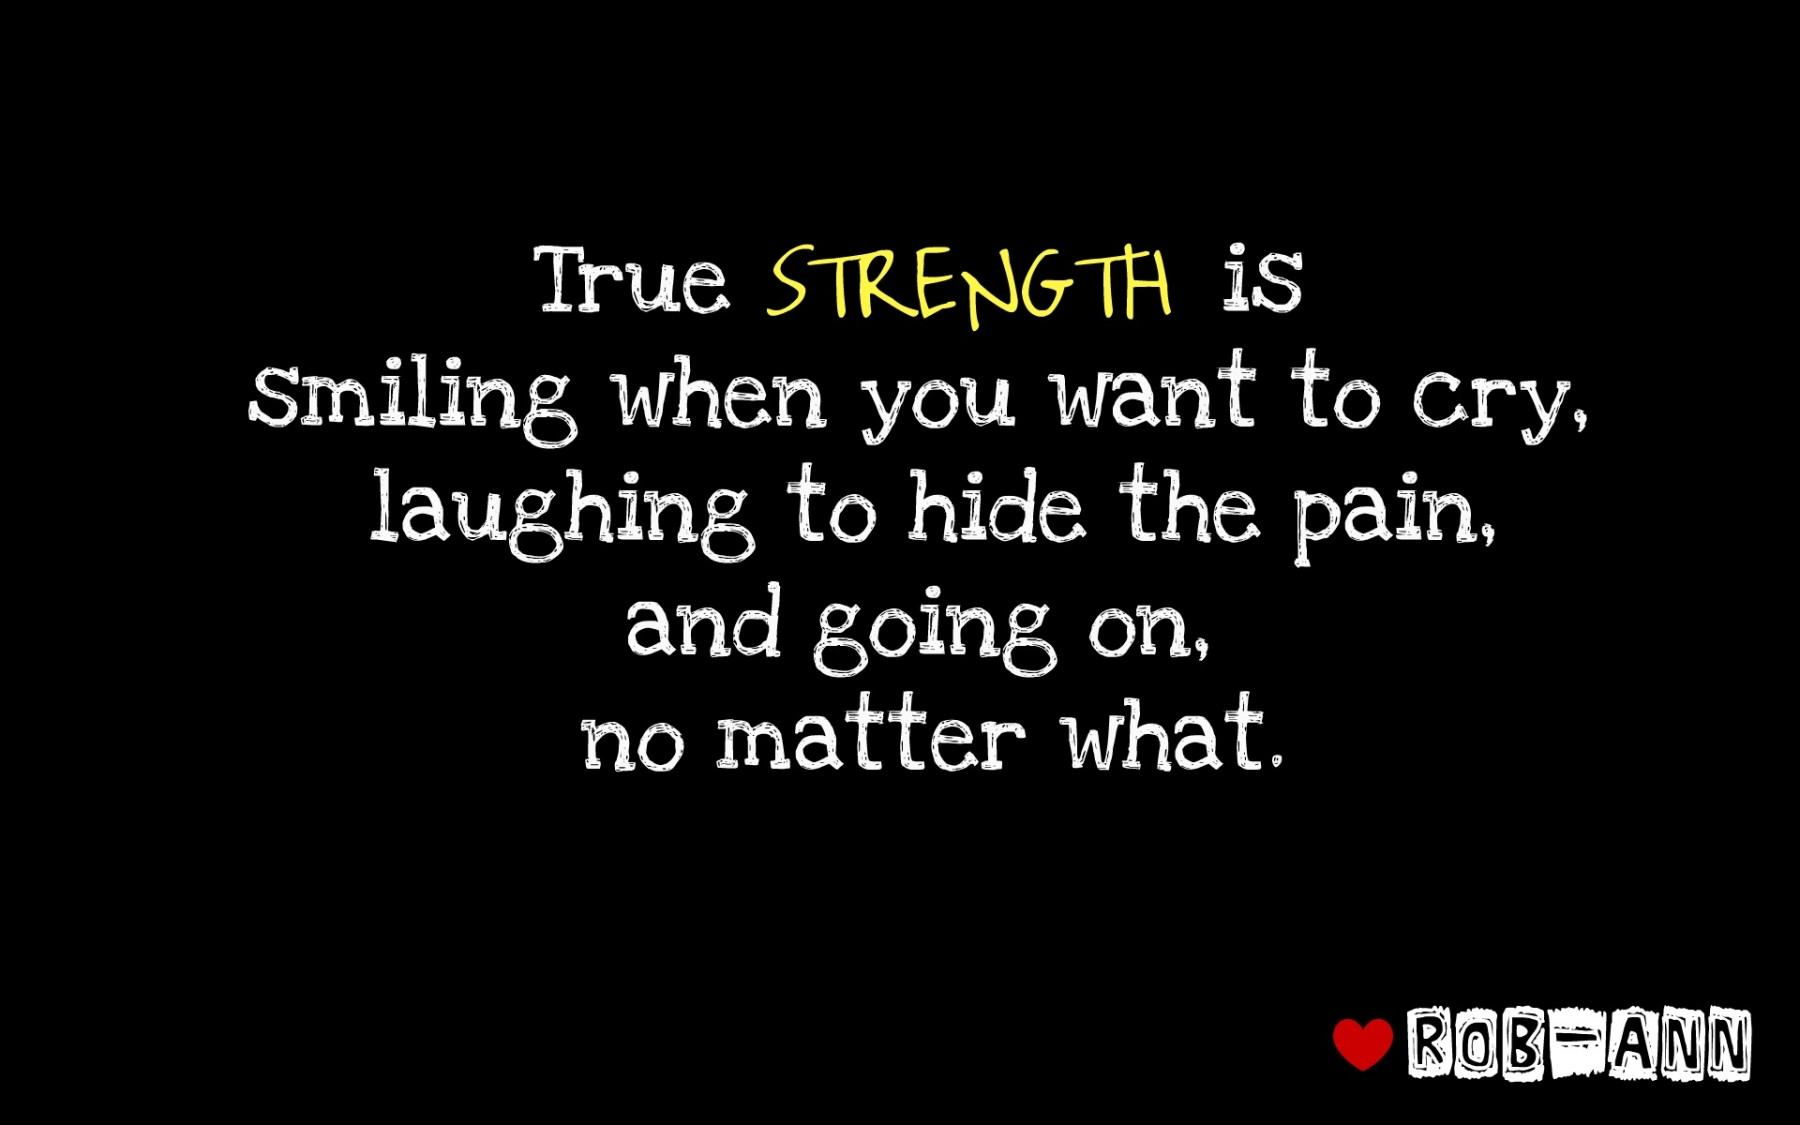 179 @ Wisdom Strength Sayings and Quotes